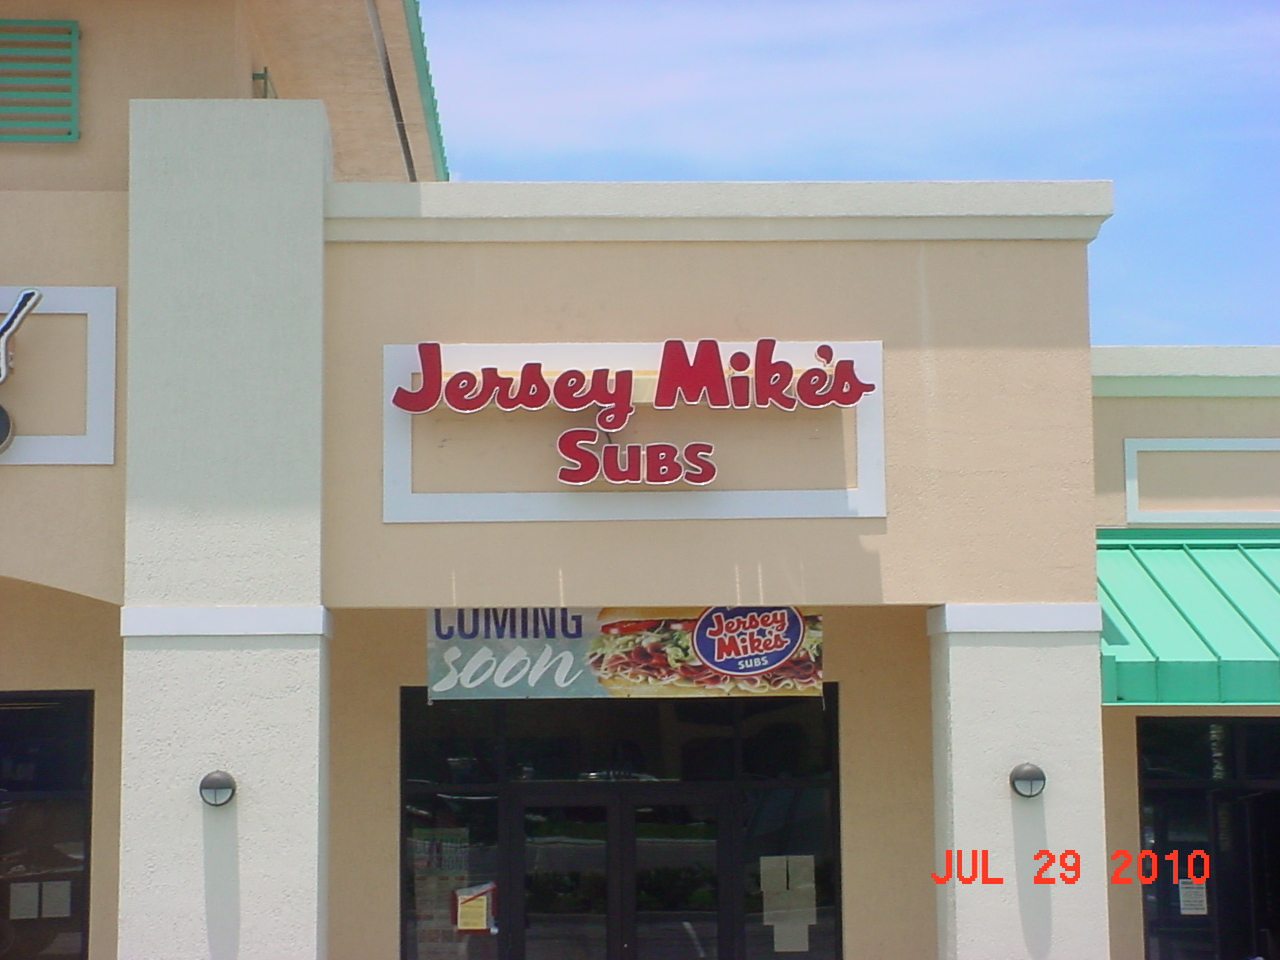 Jersey Mikes Melbourne completed